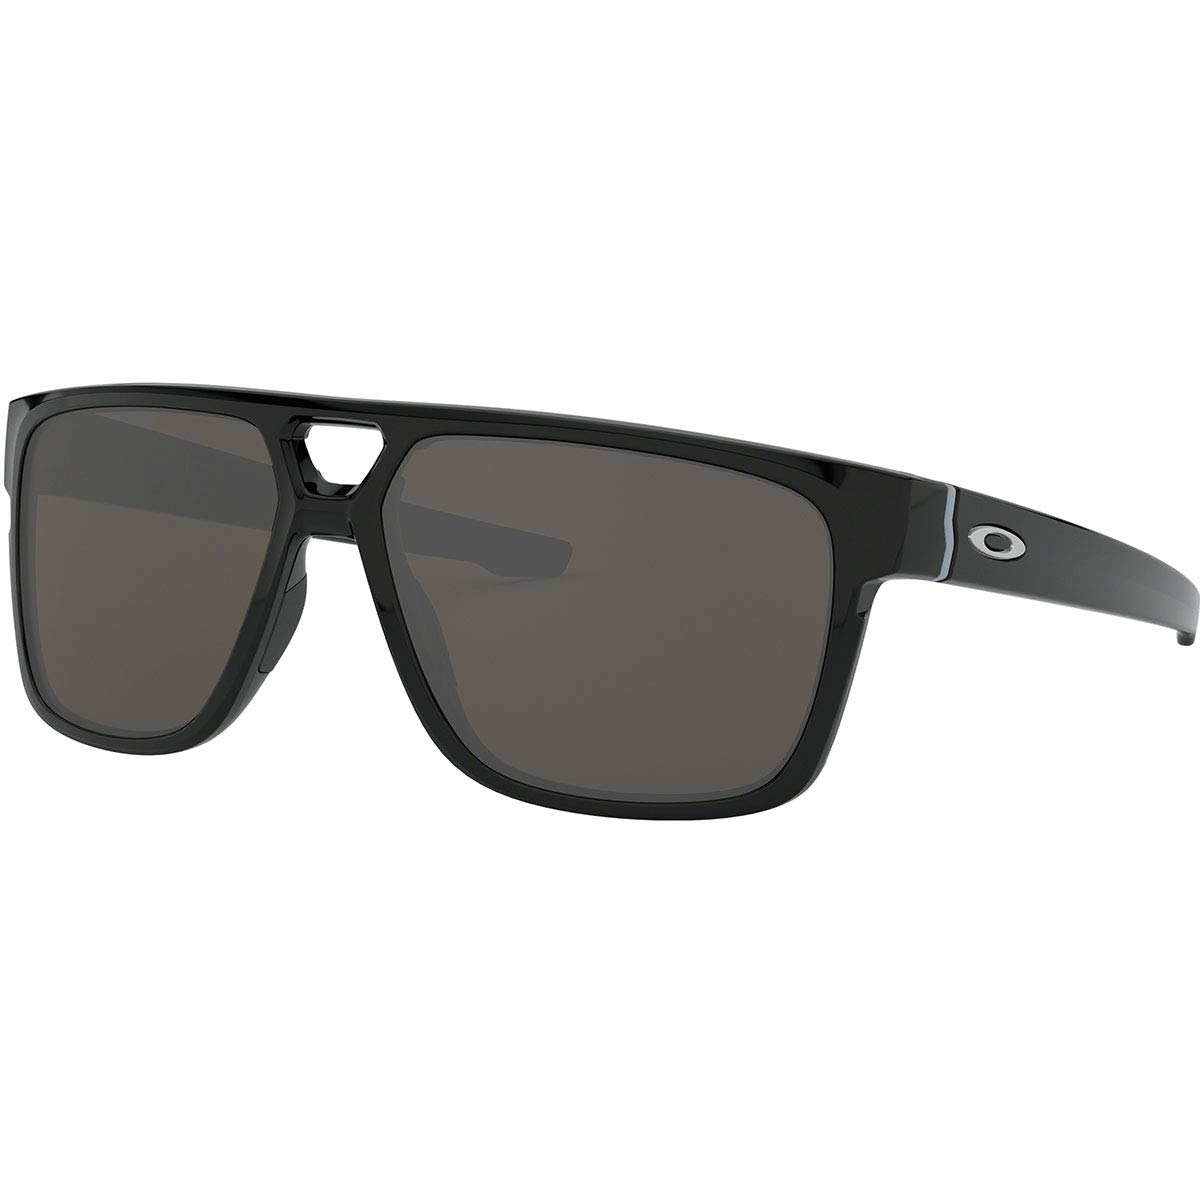 Oakley CROSSRANGE Patch 9382 Gafas, Polished Black/WARMGREY, 60 Hombres